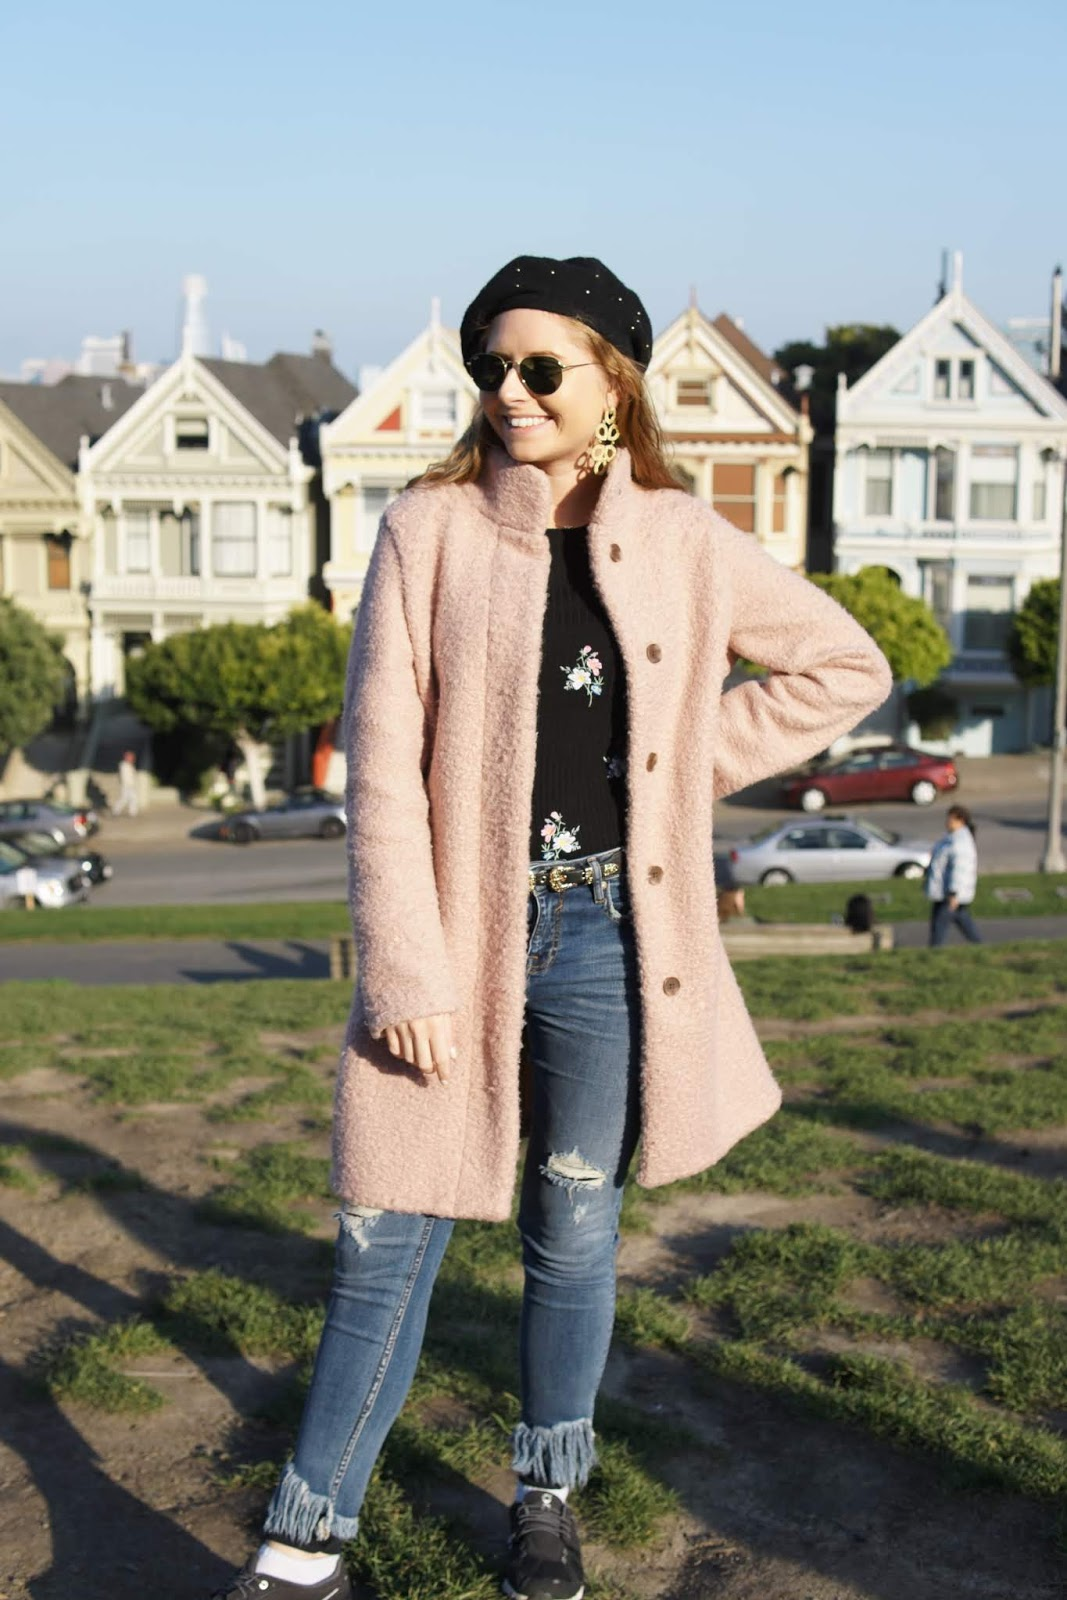 tampa blogger amanda burrows stands in front of the painted ladies in san francisco, california. she is wearing a pink boucle coat from old navy with a floral sweater and pair of dark jeans.